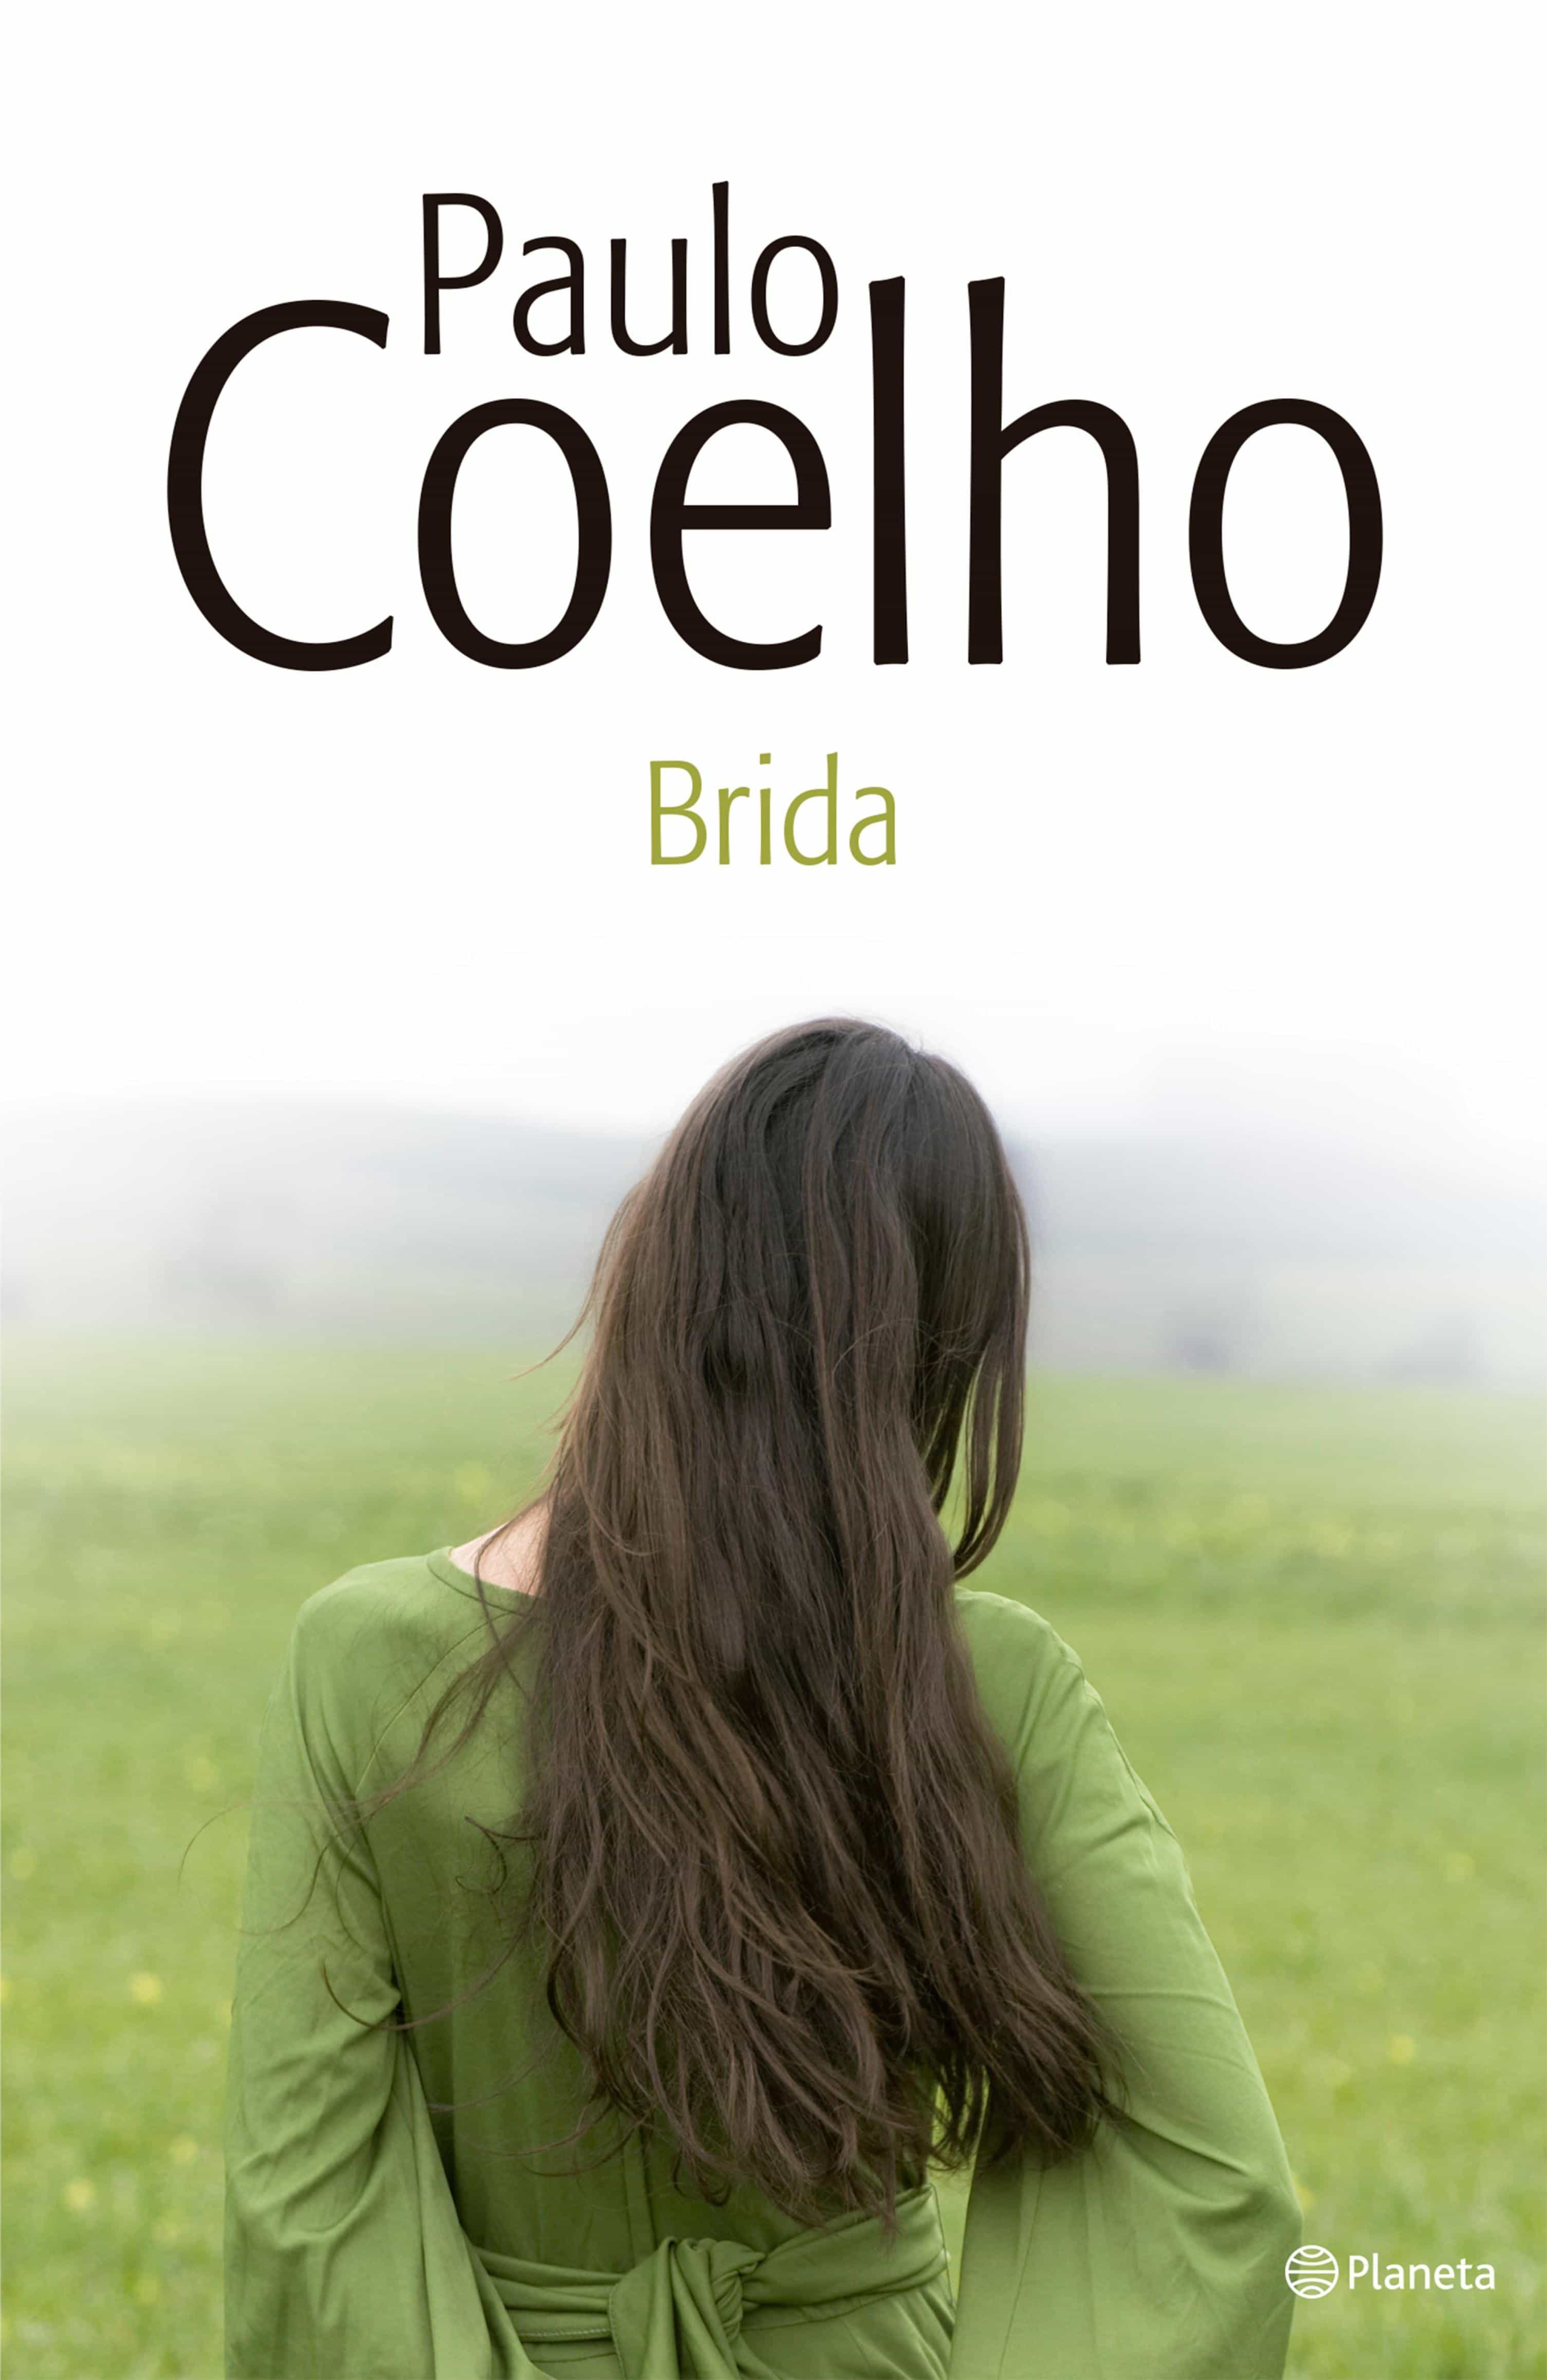 PAULO COELHO BRIDA PDF DOWNLOAD